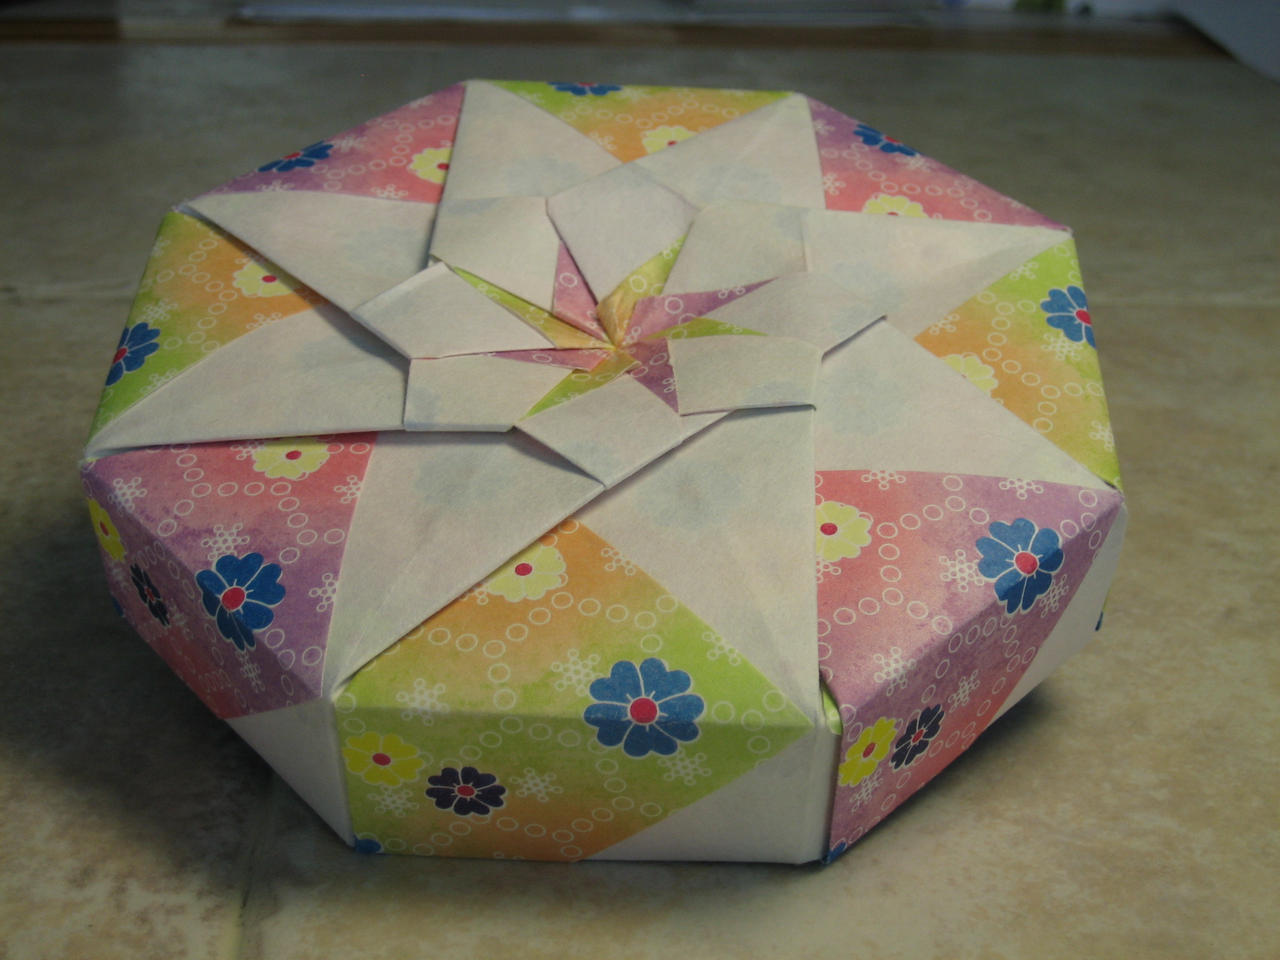 Fabulous Origami Boxes By Tomoko Fuse Goodreads Psychologyarticles S